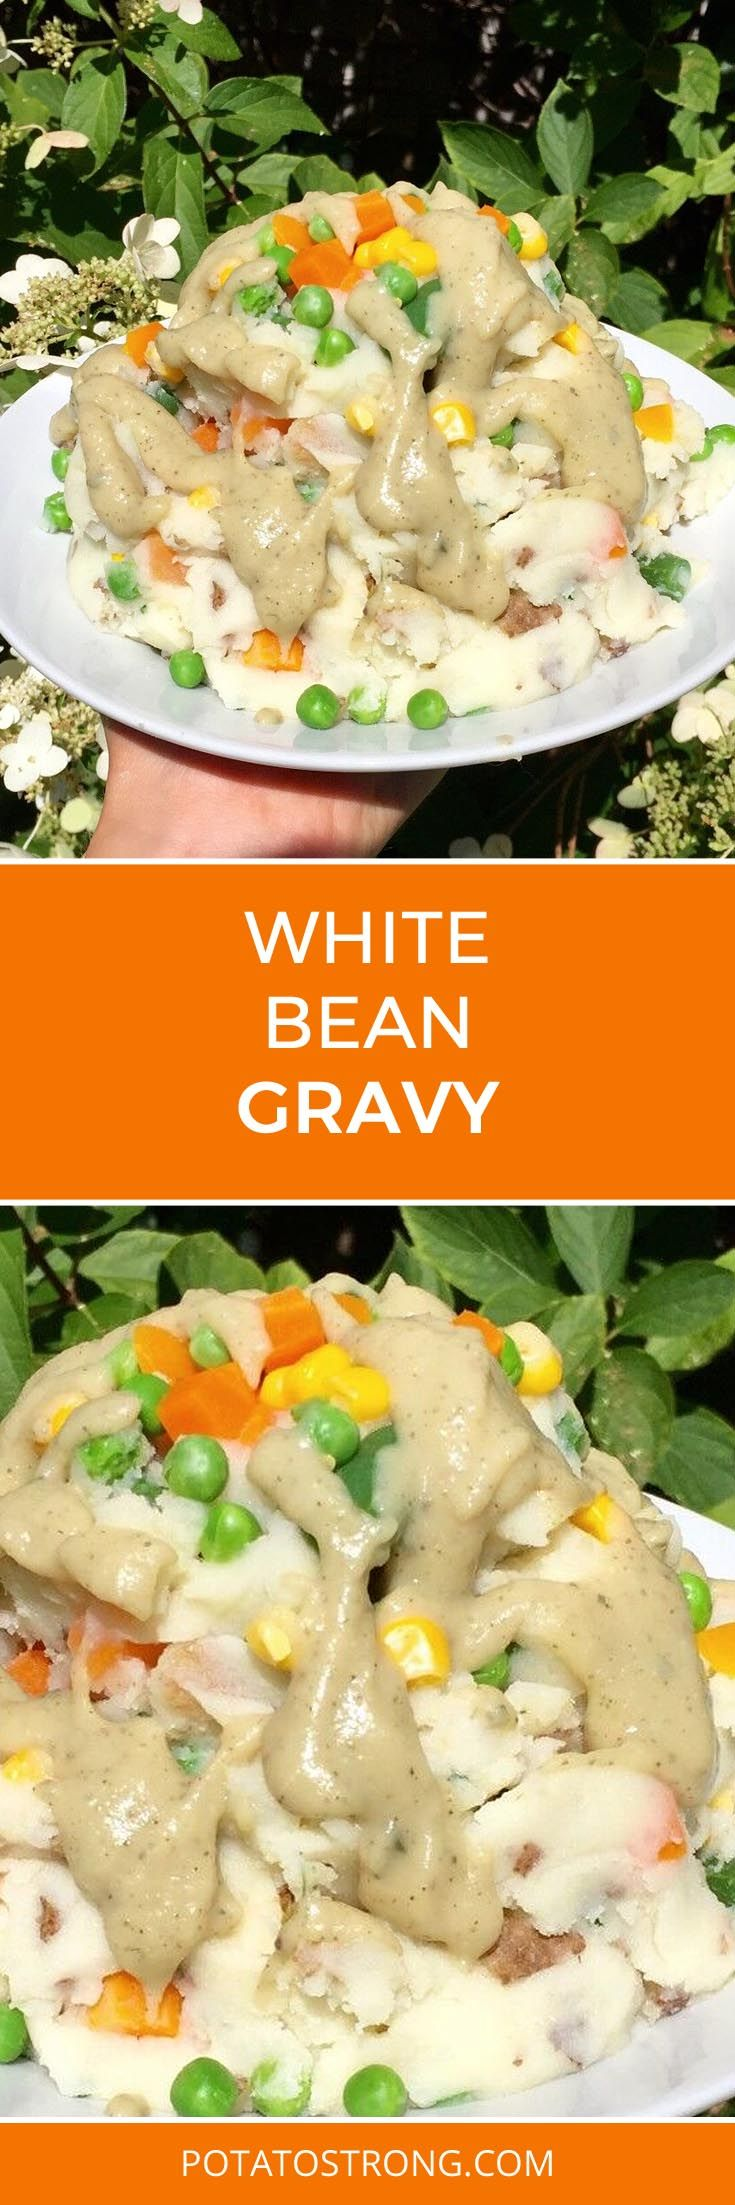 This gravy is an alternative to my chicken-style and brown gravies – substituting a can of no sodium added white kidney beans for the flour/water. Would be good for people with gluten issues as well. Ingredients 1 can of White Kidney Beans (or cook your own beans and add water for desired thickness) 1 tsp …